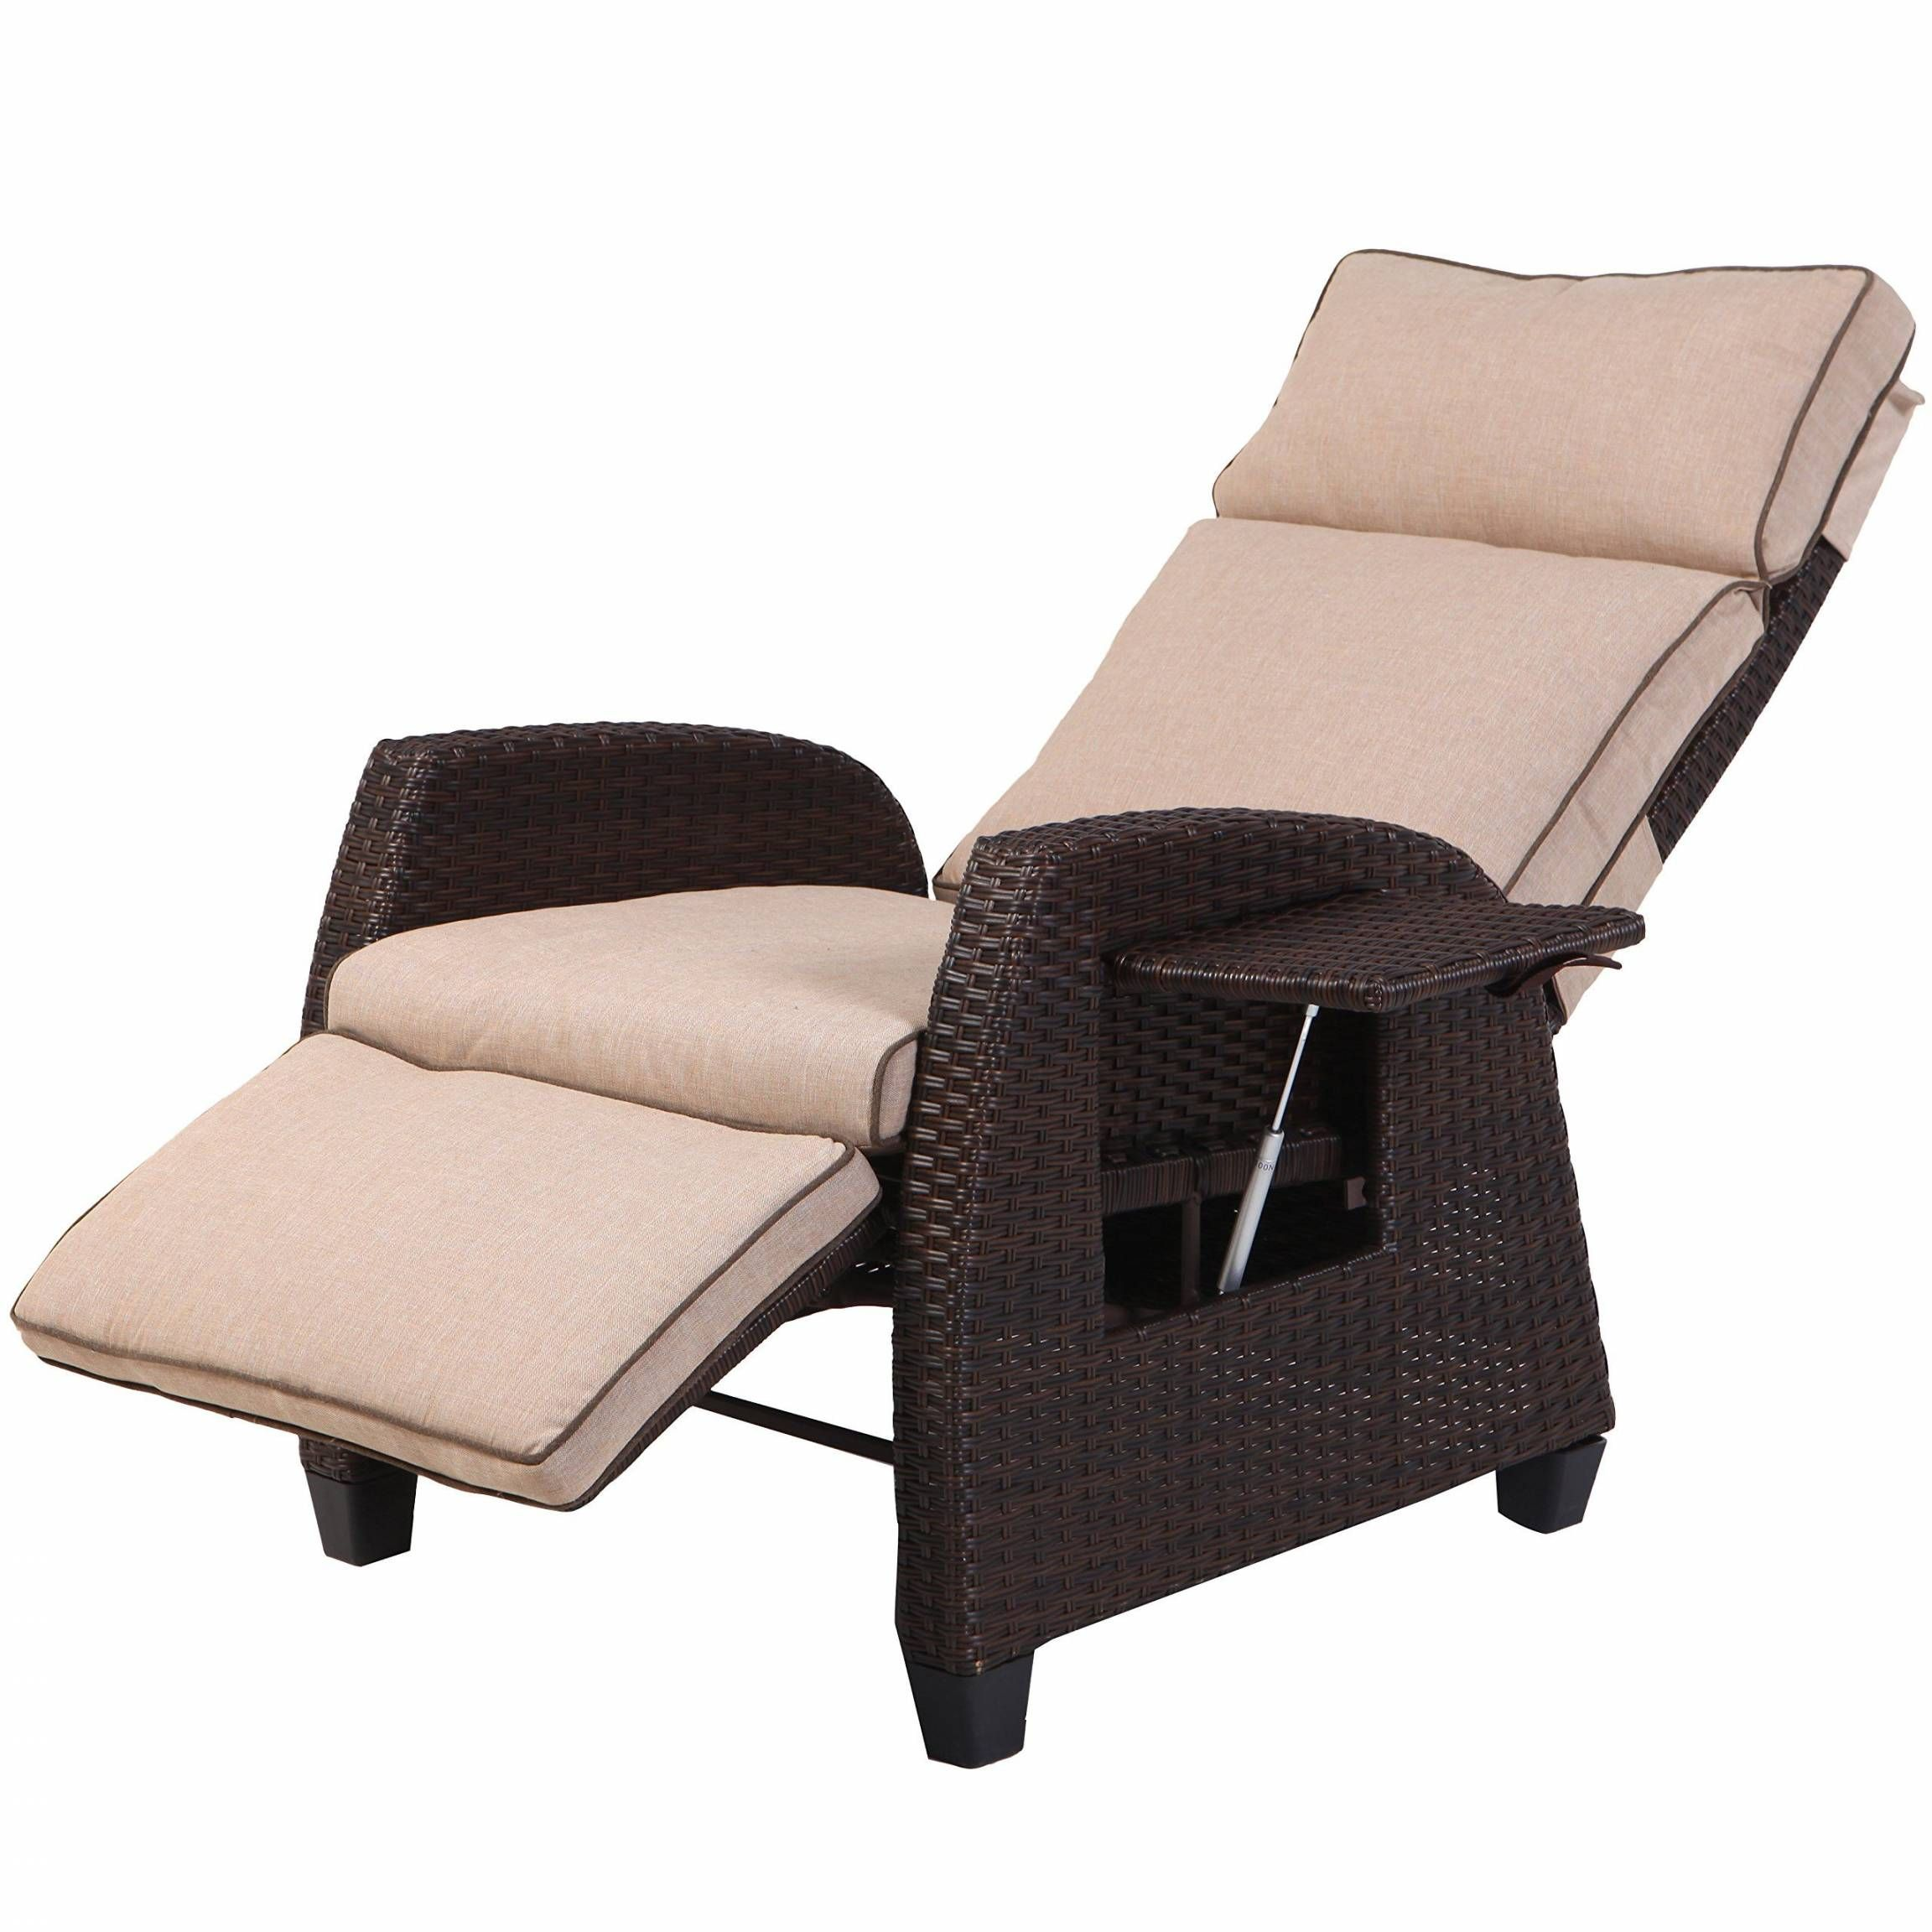 17 Fancy Patio Furniture Lounge Chair Cushions Collection In 2020